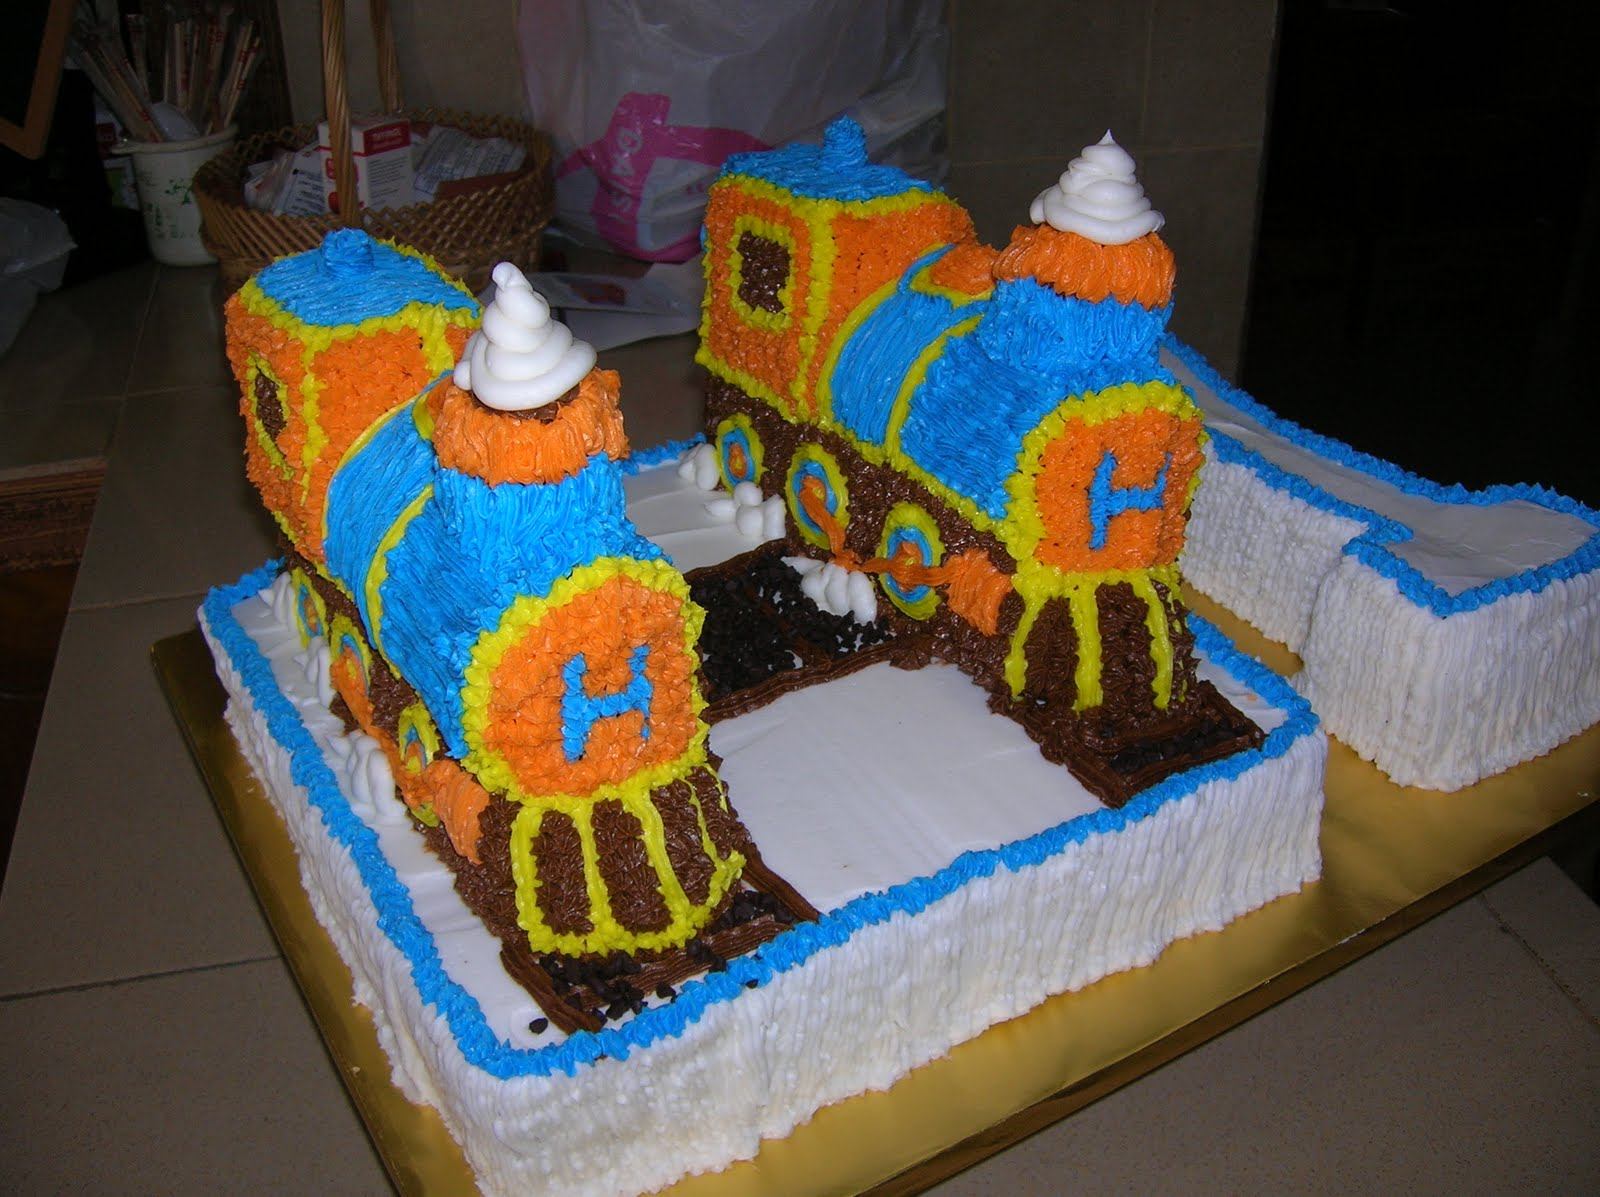 Images Of Train Birthday Cakes : Cakes, Cakes N more: Train Birthday cake